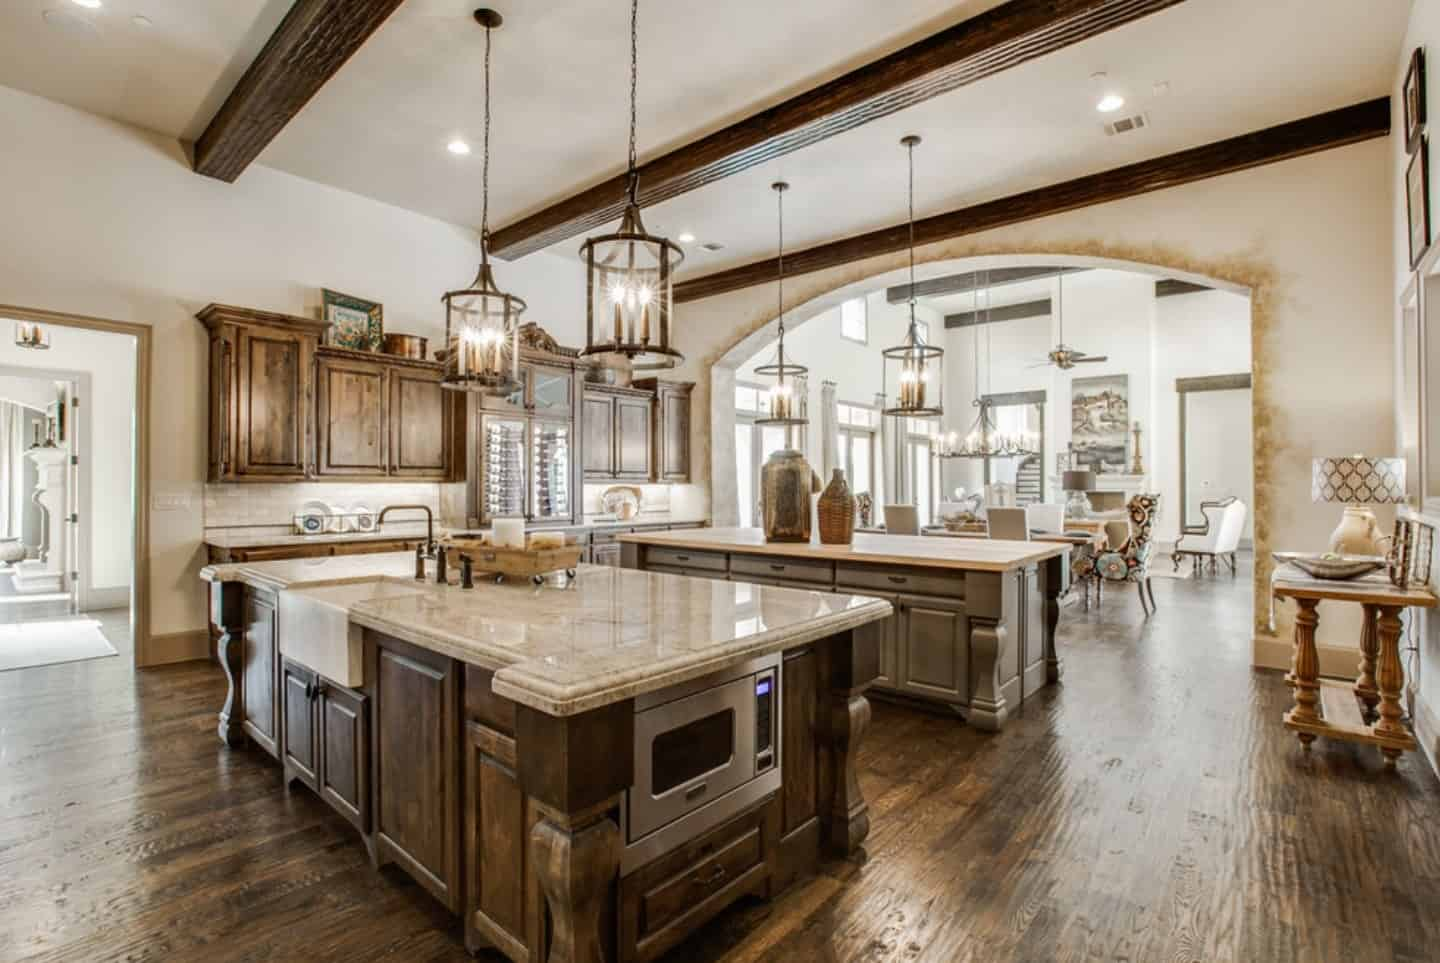 The hardwood flooring has a textured finish to it that works well with the pair of wooden kitchen islands with the same tone. They both have beige marble countertops and topped with lantern-like pendant lights from the white ceiling with exposed wooden beams.